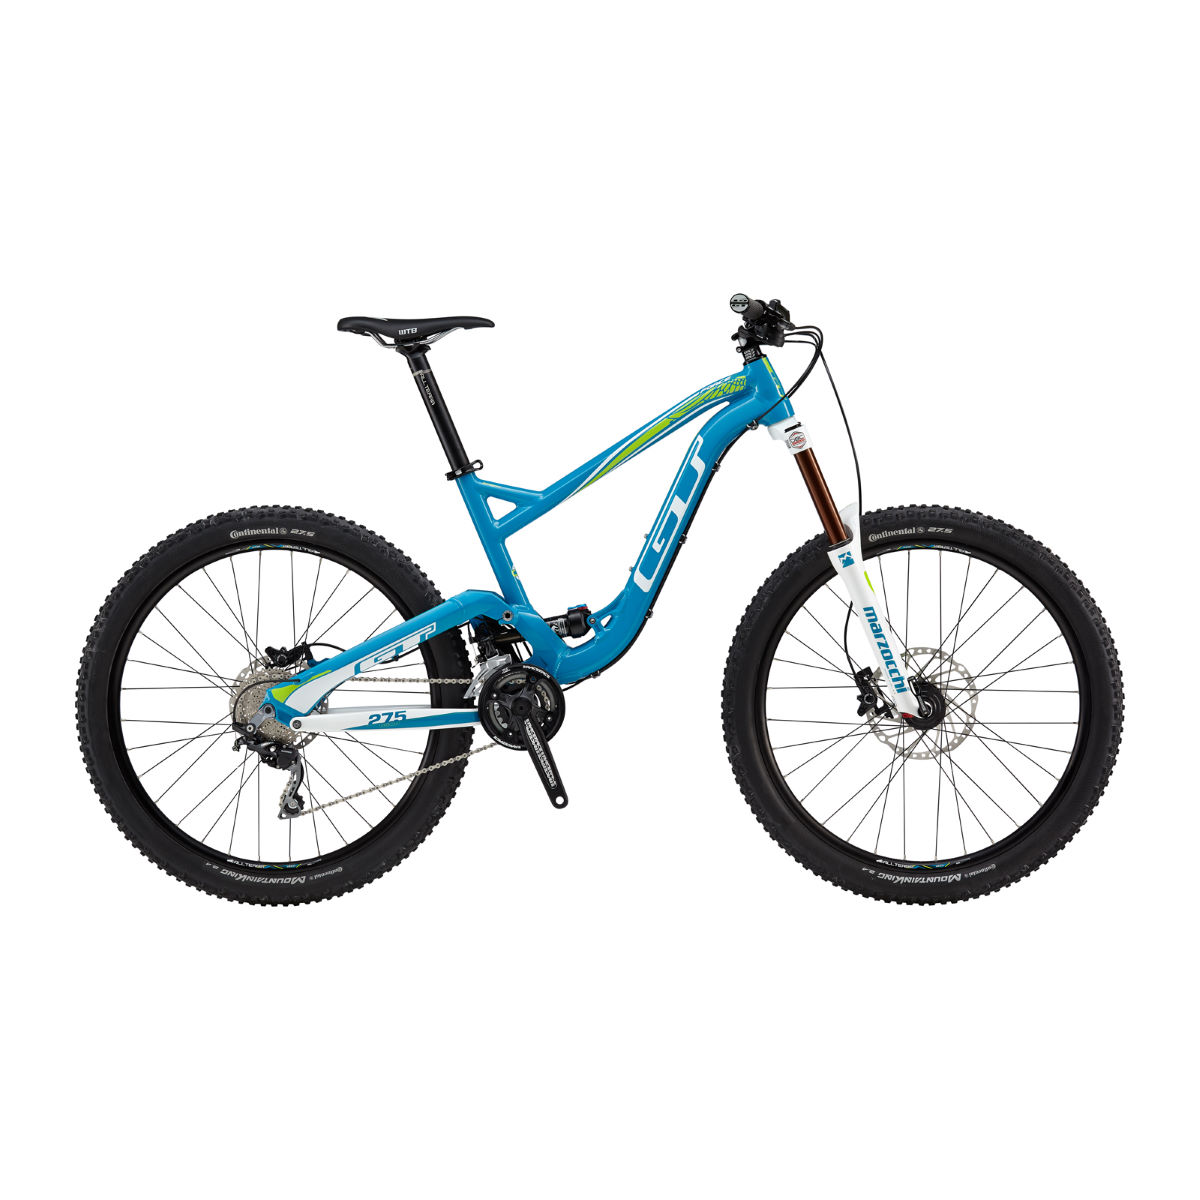 GT Force X Sport (2016) Mountain Bike - M Stock Bike Blue/white VTT tout suspendu